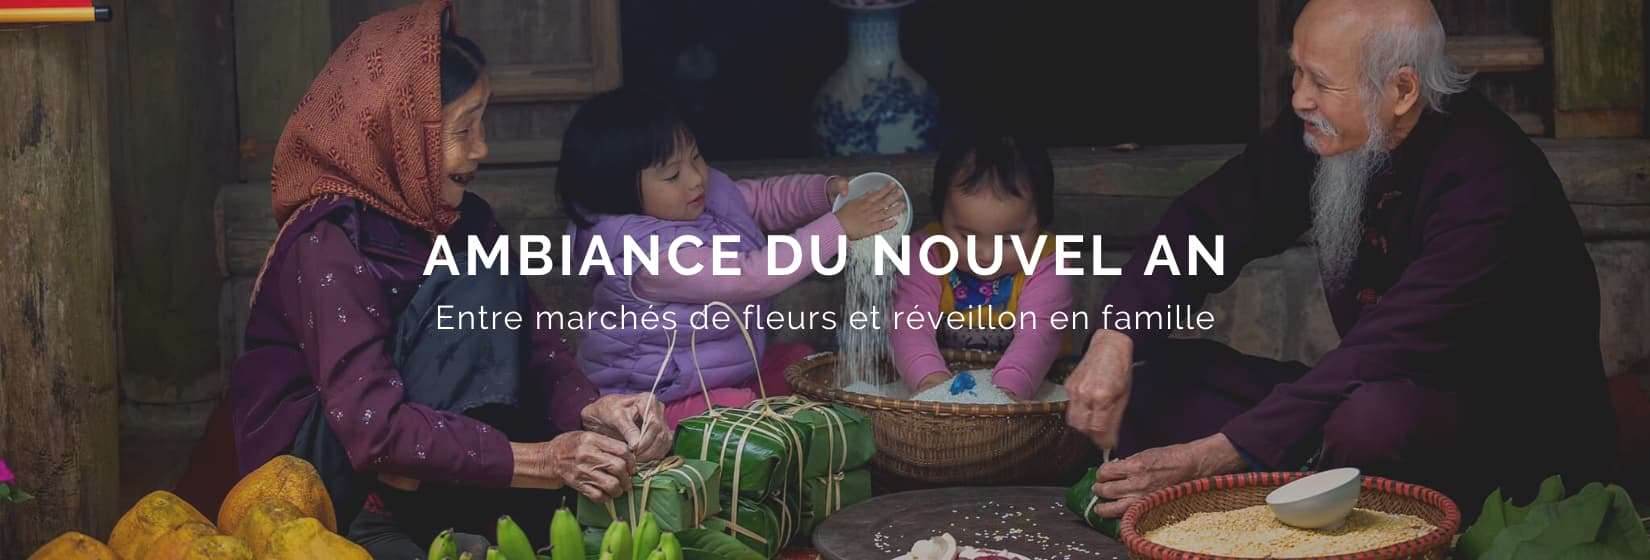 banner-ambiance-festive-nouvel-an